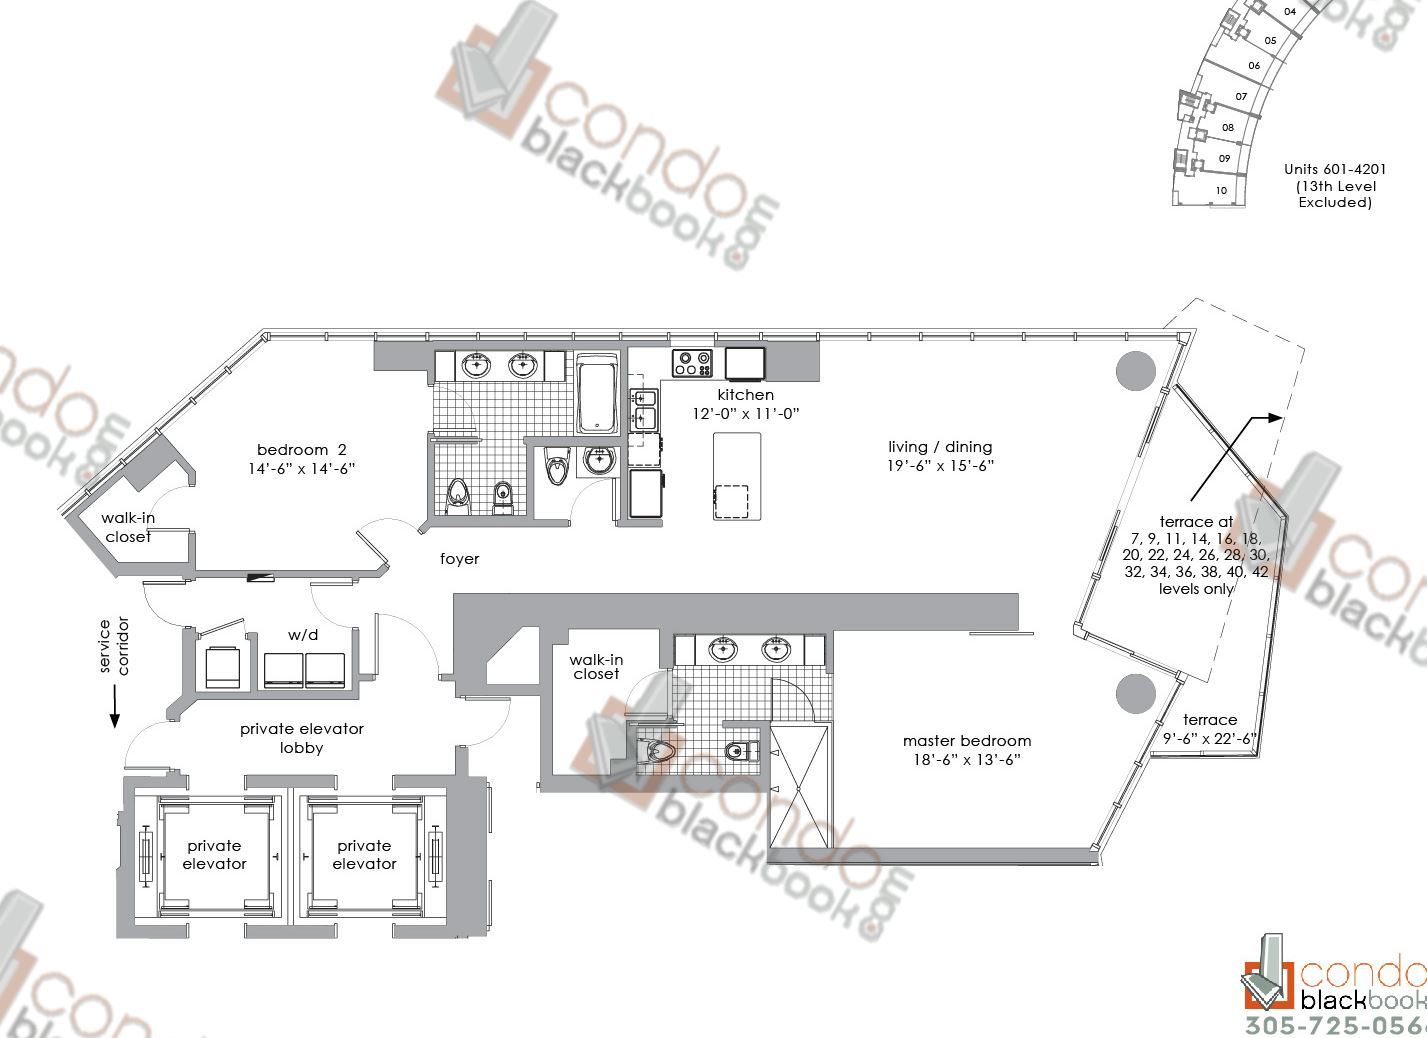 Floor plan for Paramount Bay Edgewater Miami, model 01, line 01, 2/2,5 bedrooms, 1,751 sq ft